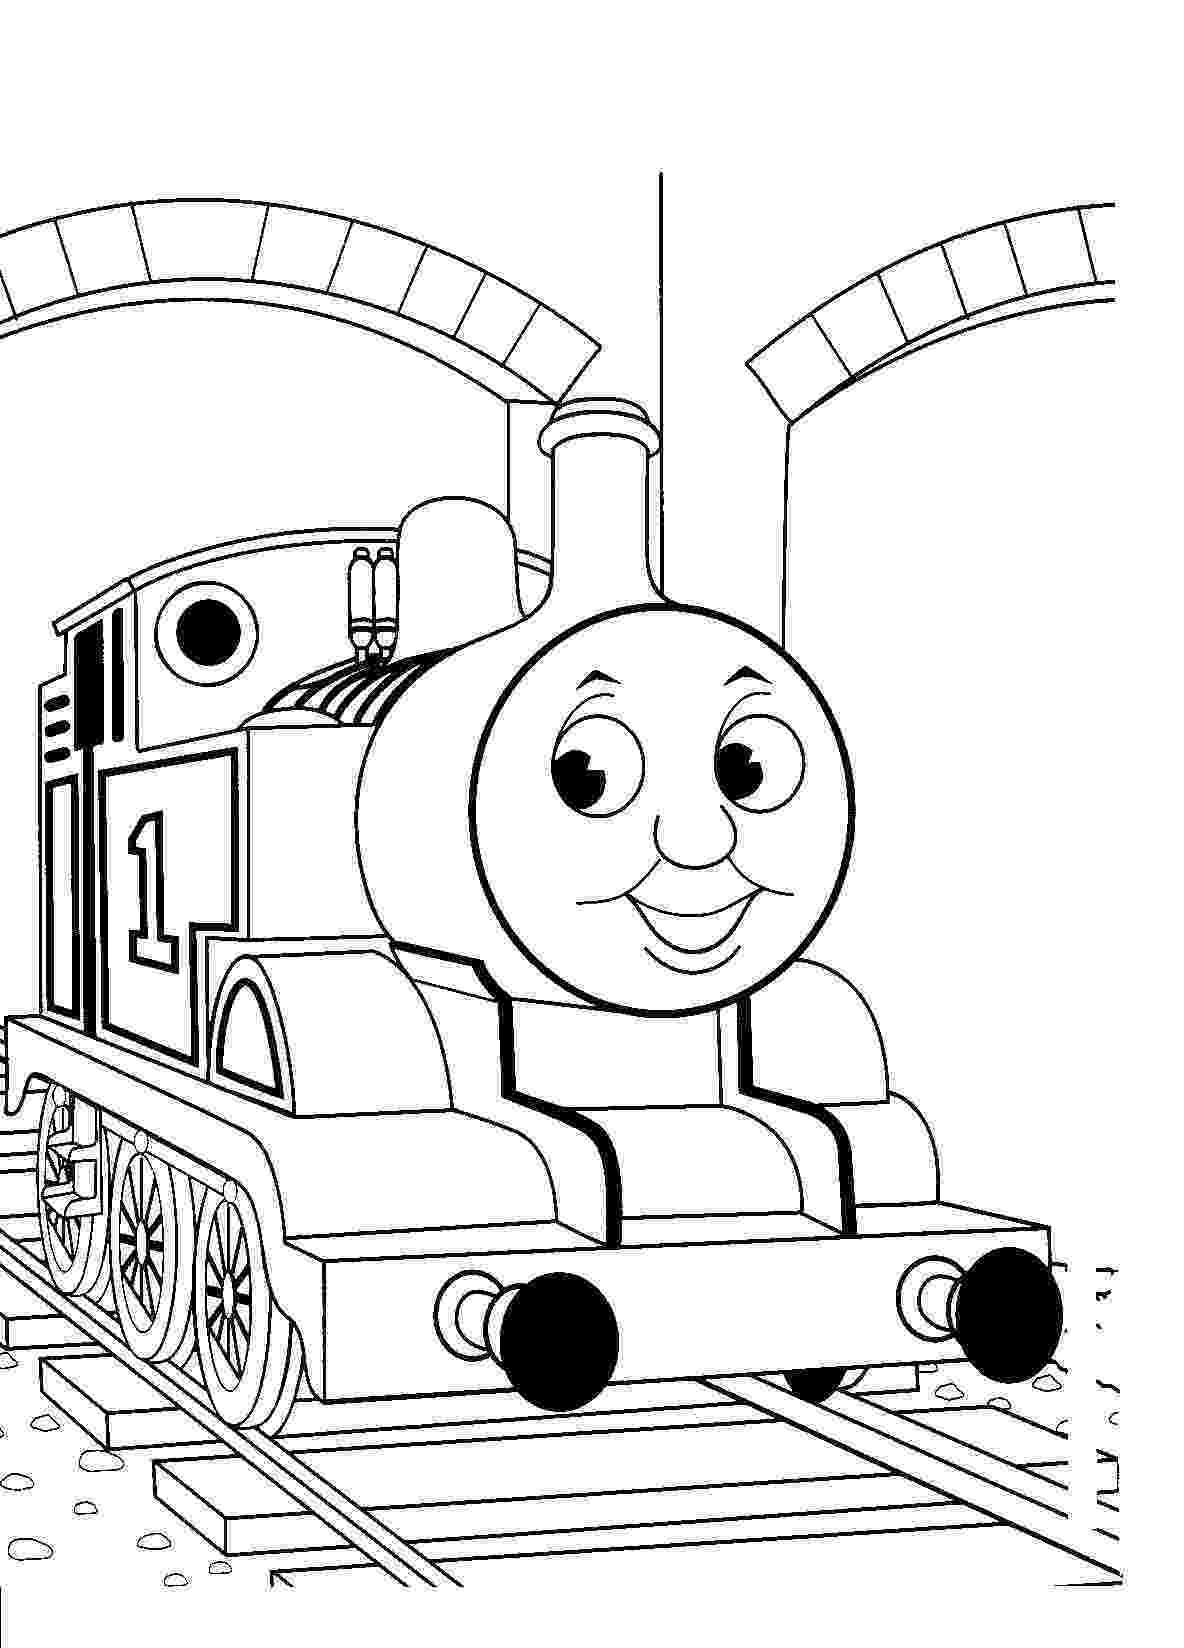 printable train free coloring page for fans of the polar express story and printable train